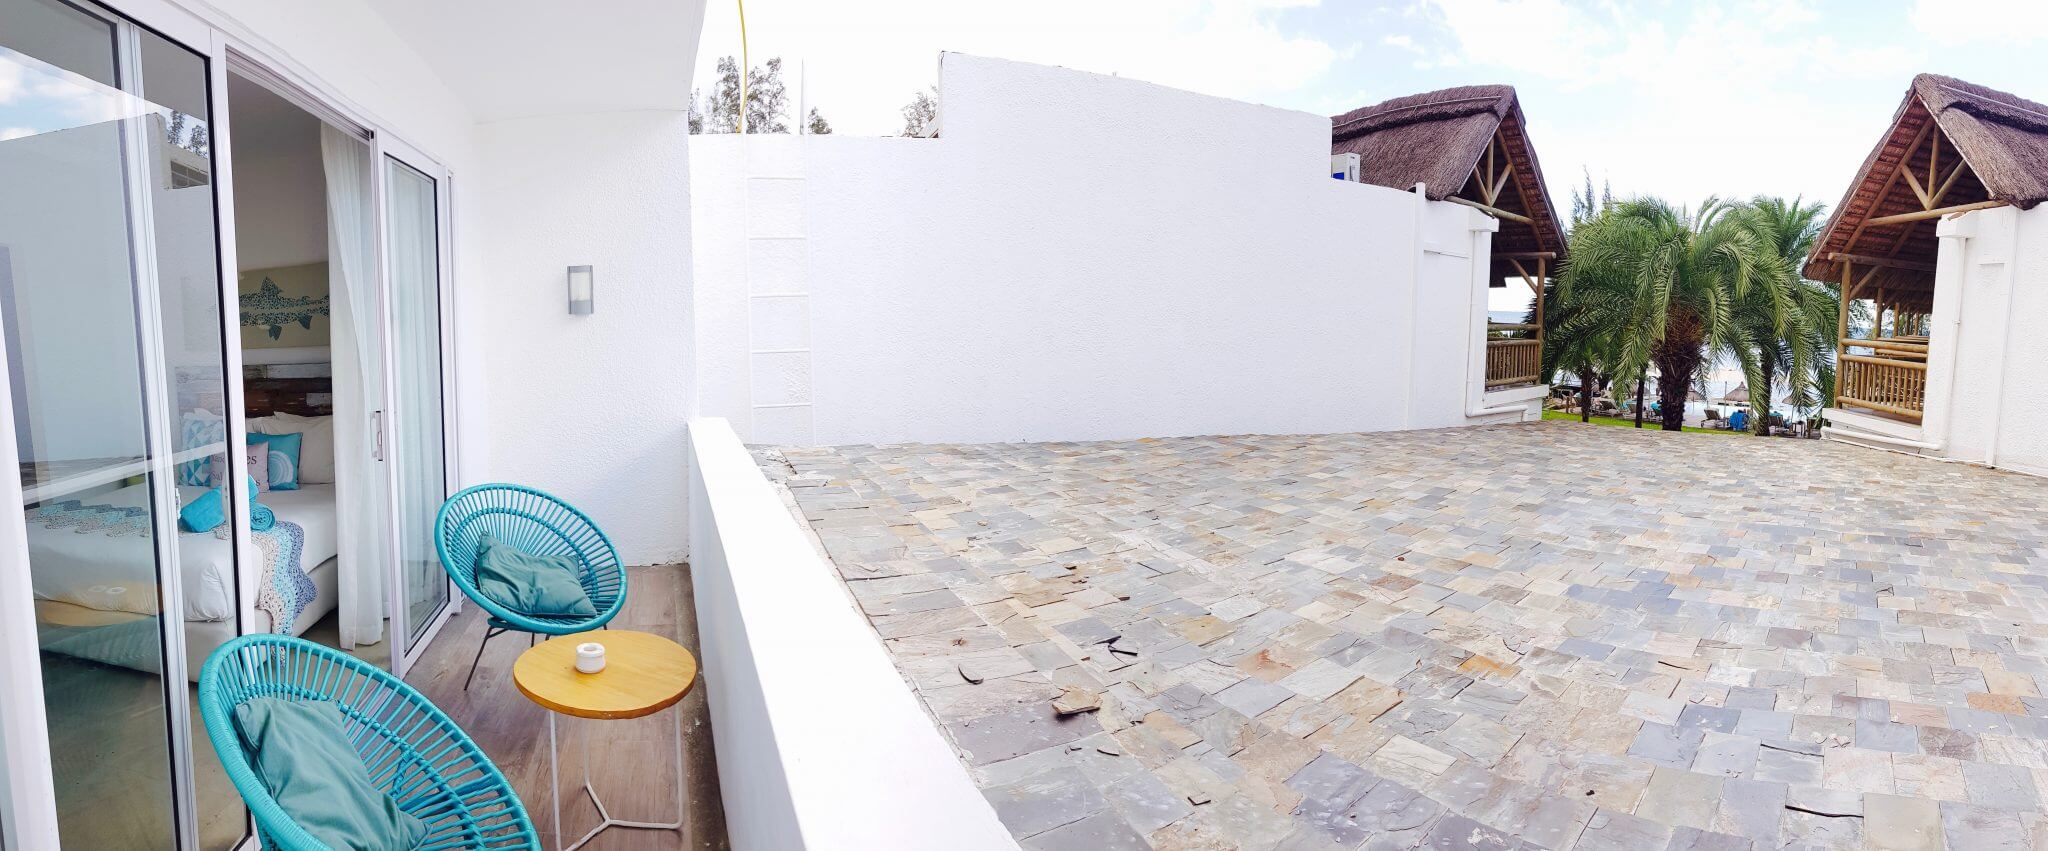 terrasse chambre standard seapoint boutique hotel ile maurice